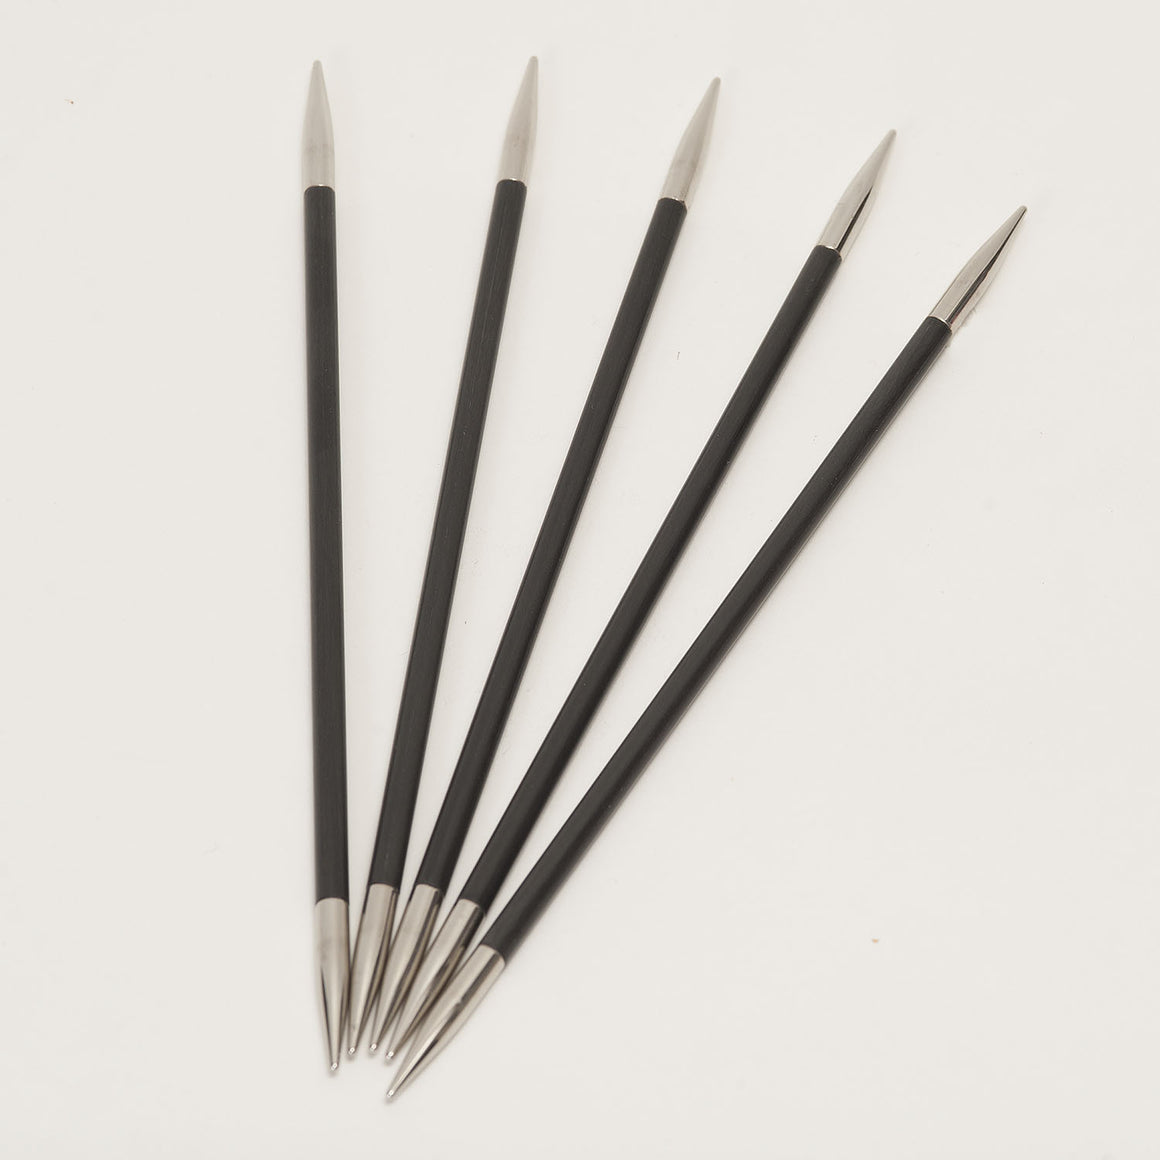 "Karbonz 6"" Double Pointed Needles"